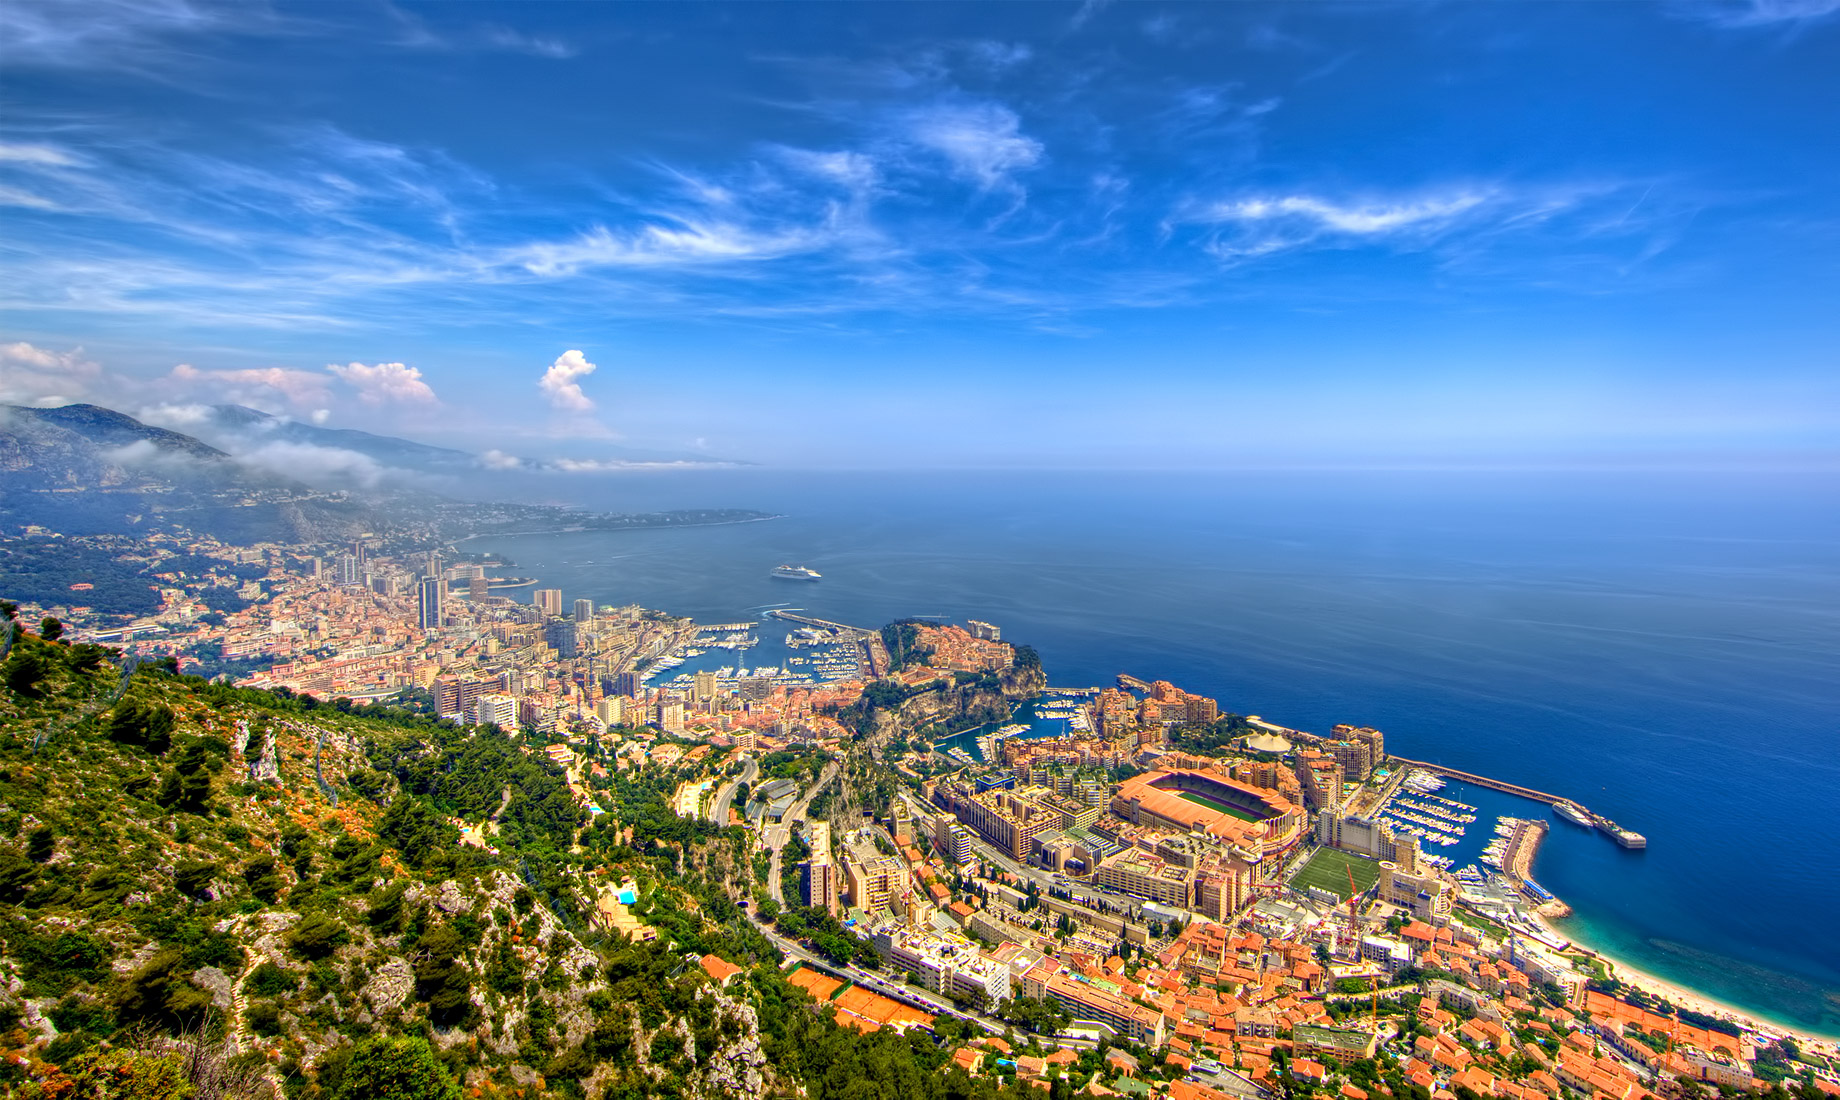 Monte Carlo - Monaco - The Most Exclusive European Resorts Locations to Buy a Holiday House